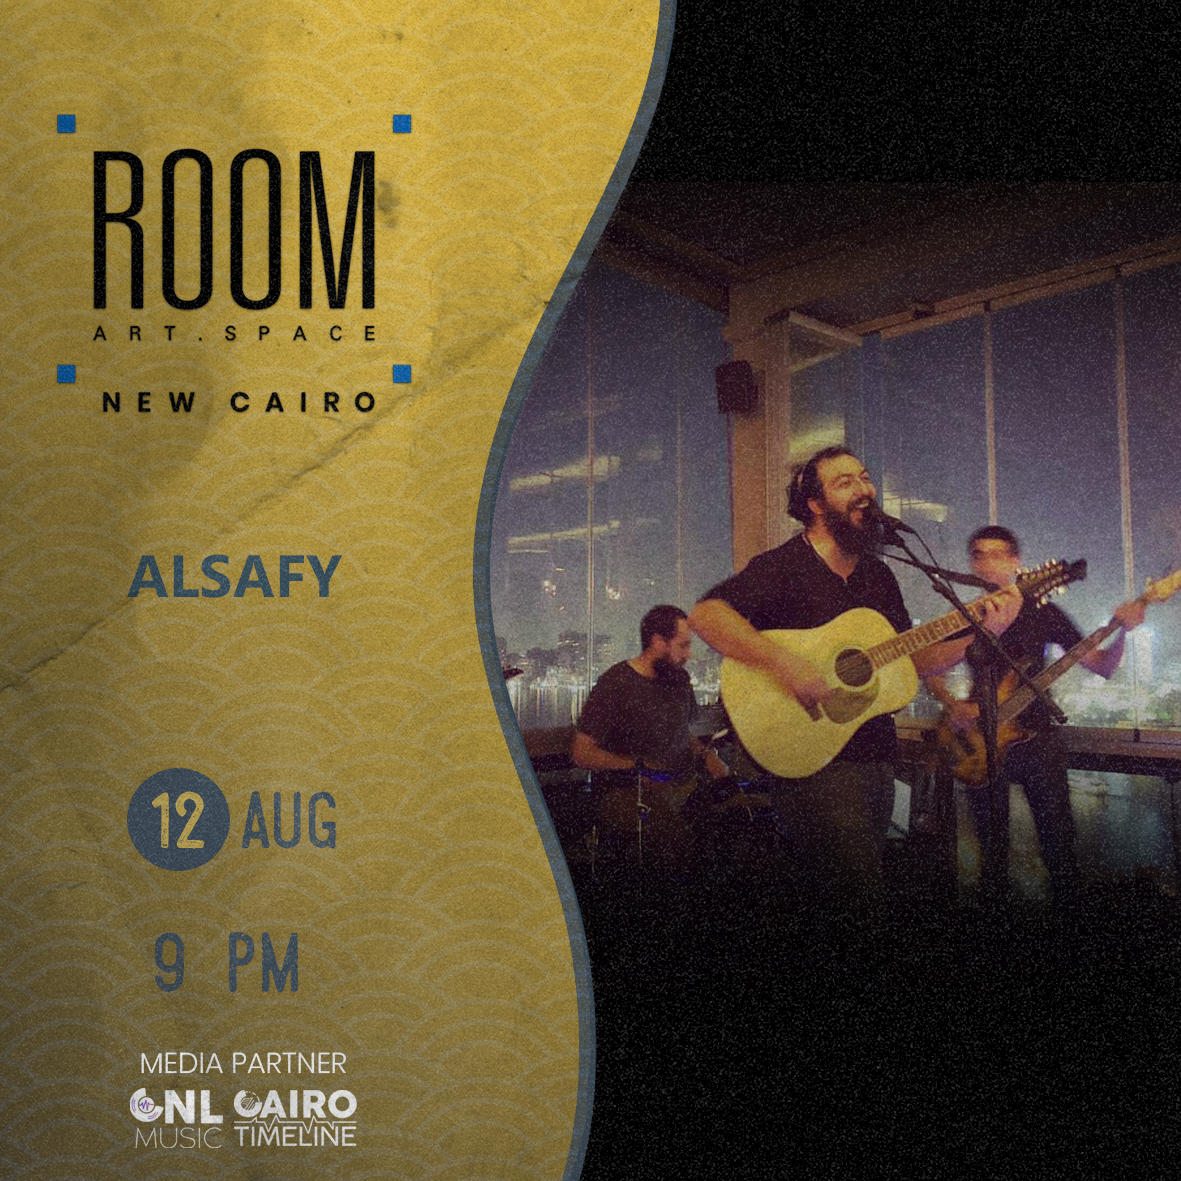 AlSafy at Room New Cairo — Room art space